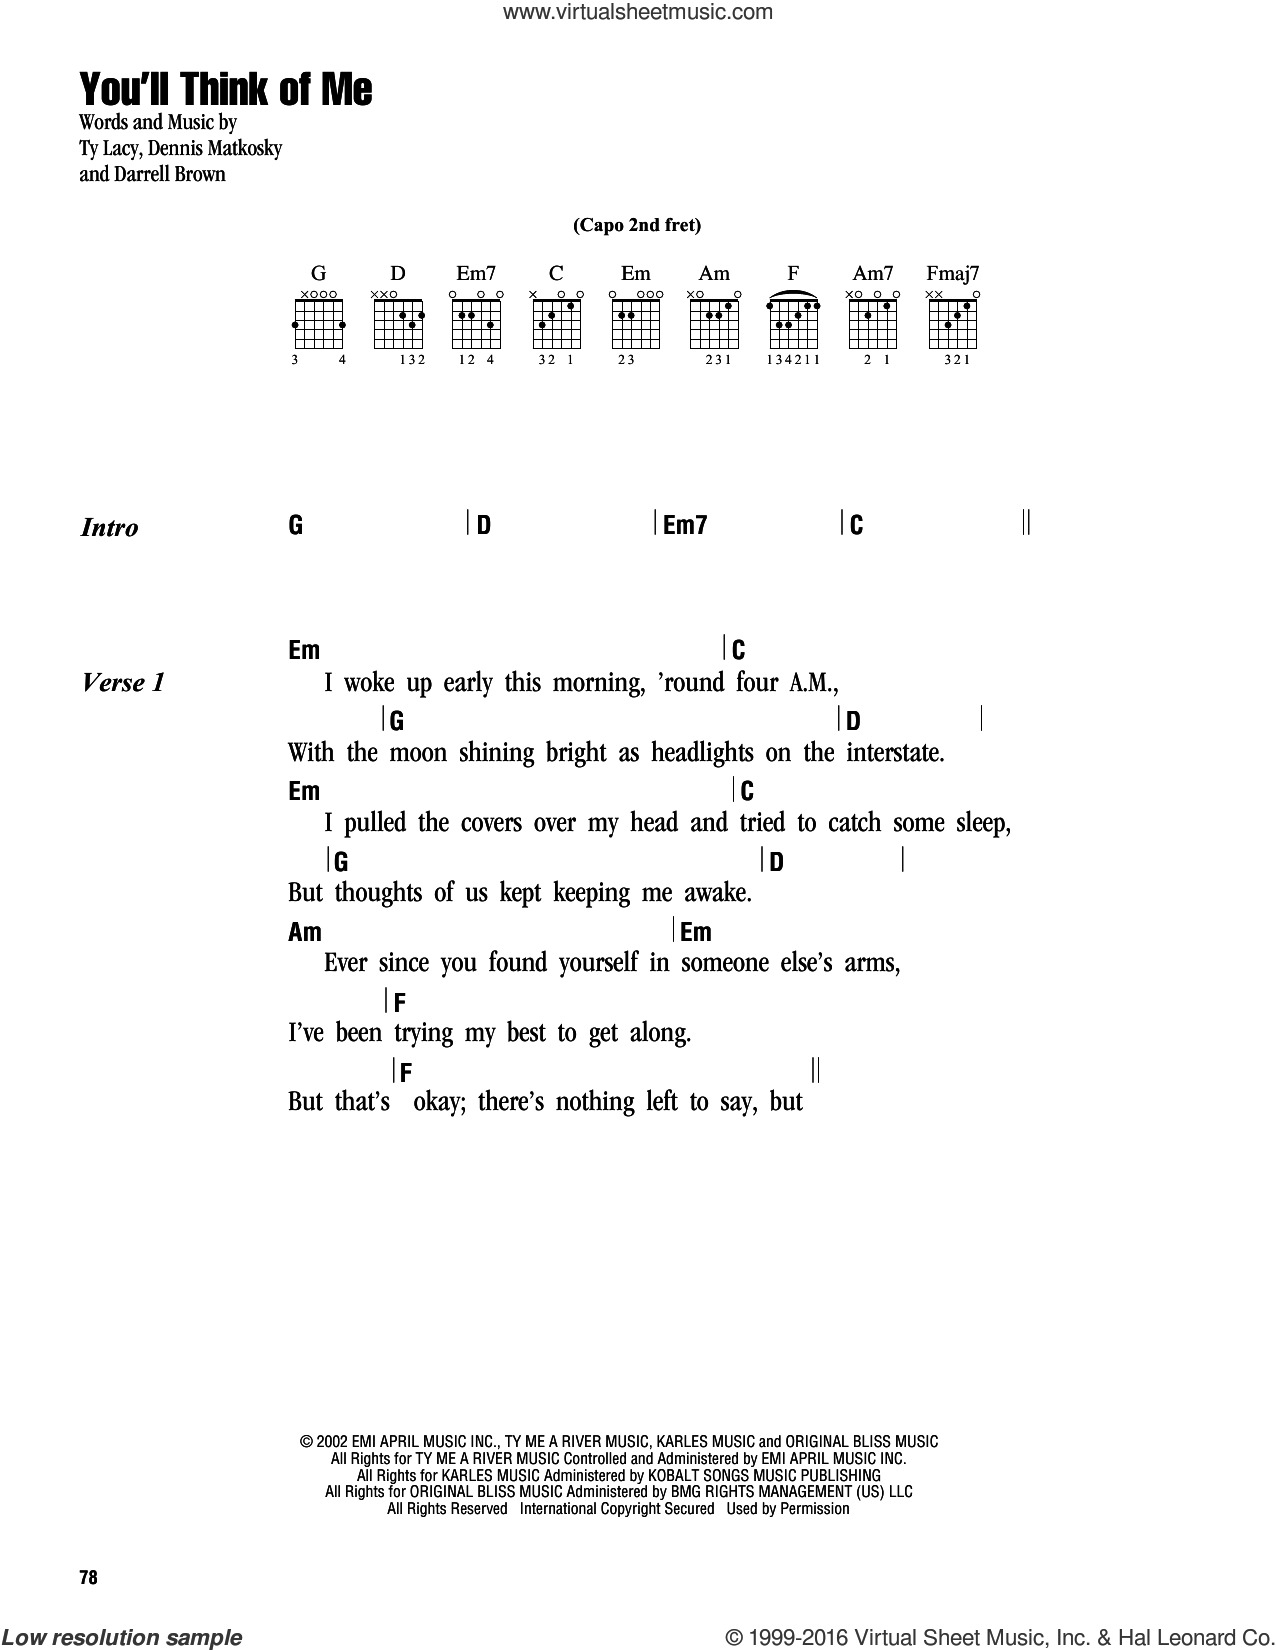 You'll Think Of Me sheet music for guitar (chords) by Ty Lacy